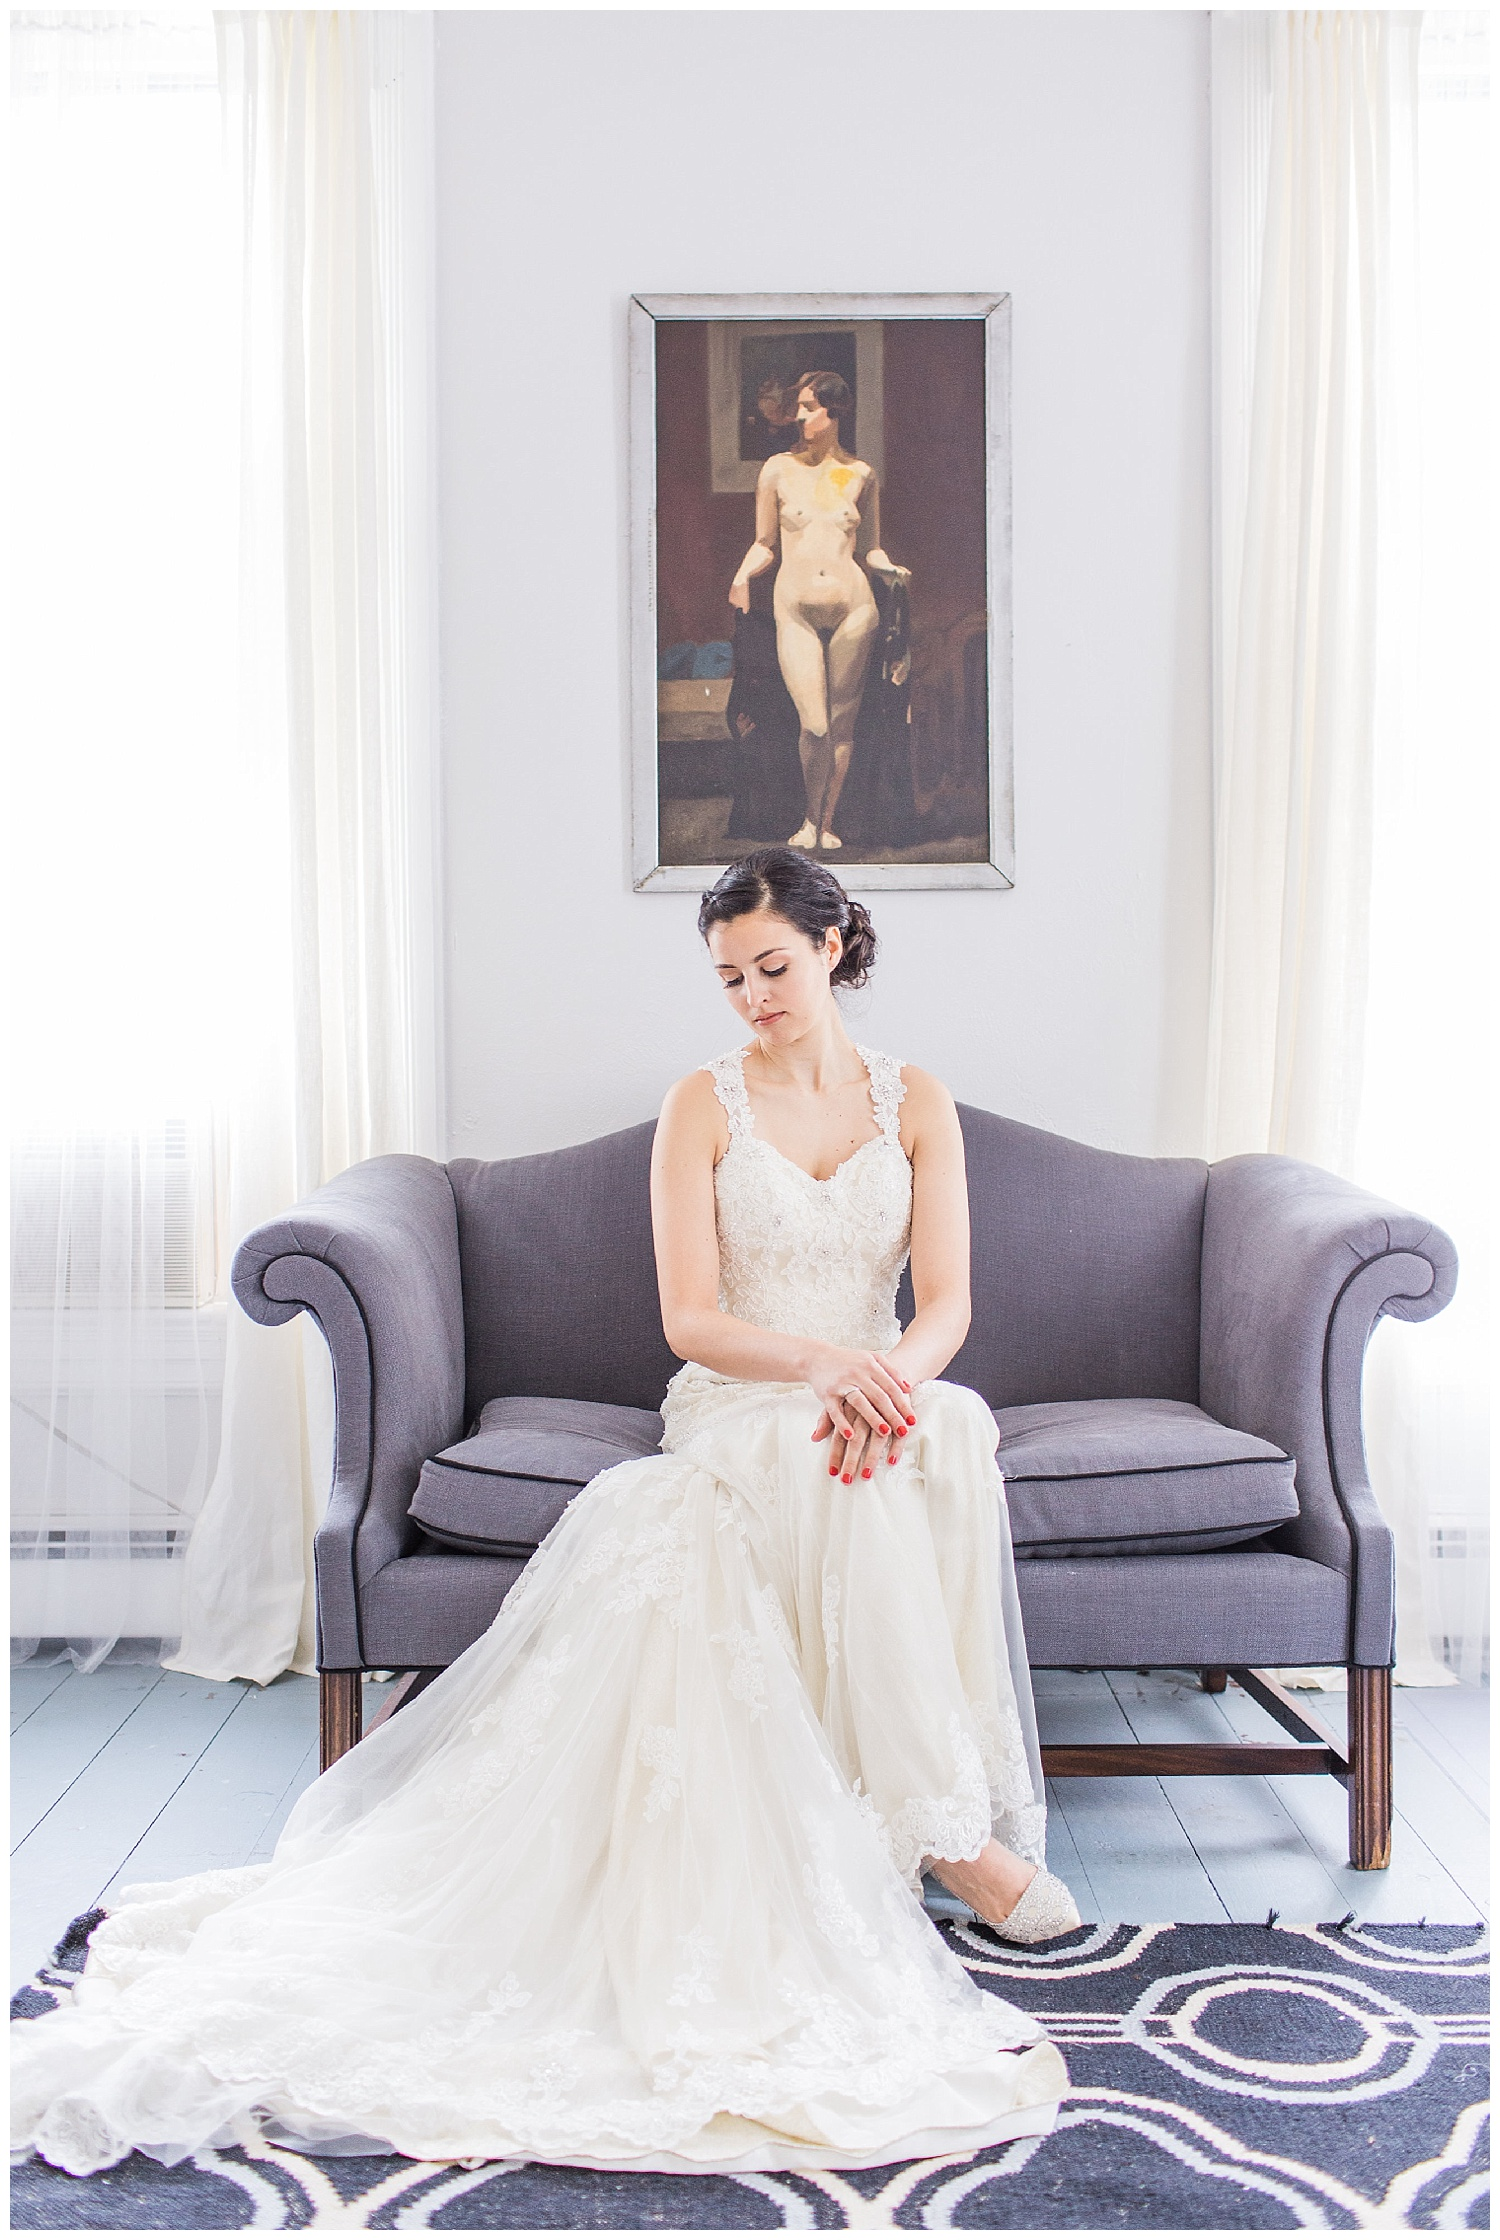 Hudson Valley Wedding | The Roxbury Barn & Estate | Roxbury, NY | www.redoakweddings.com